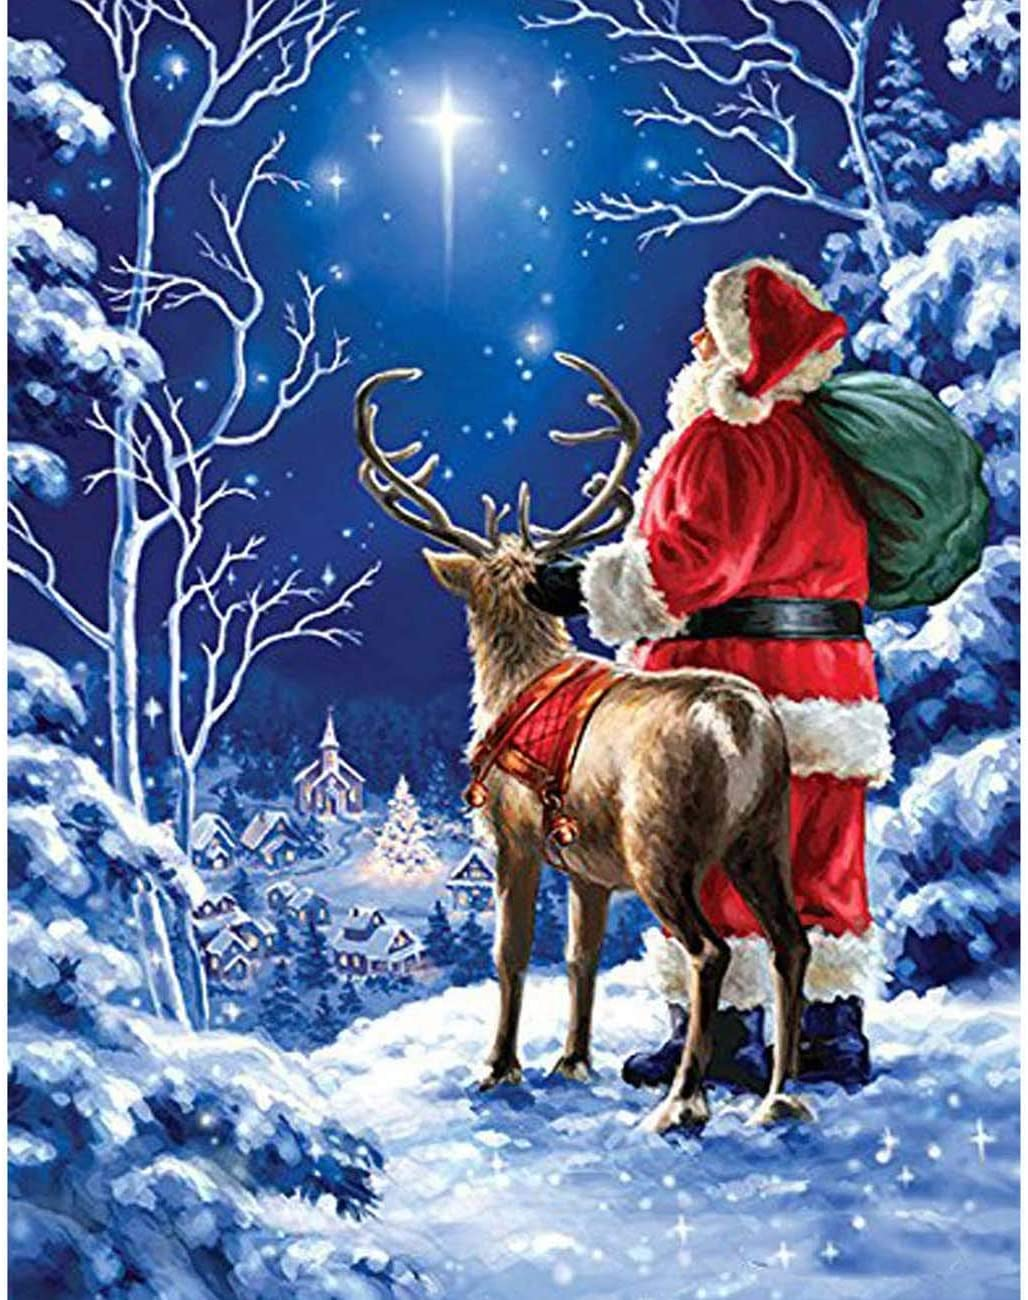 Diymood Painting Acrylic Paint by Number Kits for Students Beginner, DIY Starry Sky Santa Deer Oil Painting Drawing Wall Home Decor 16x20inch